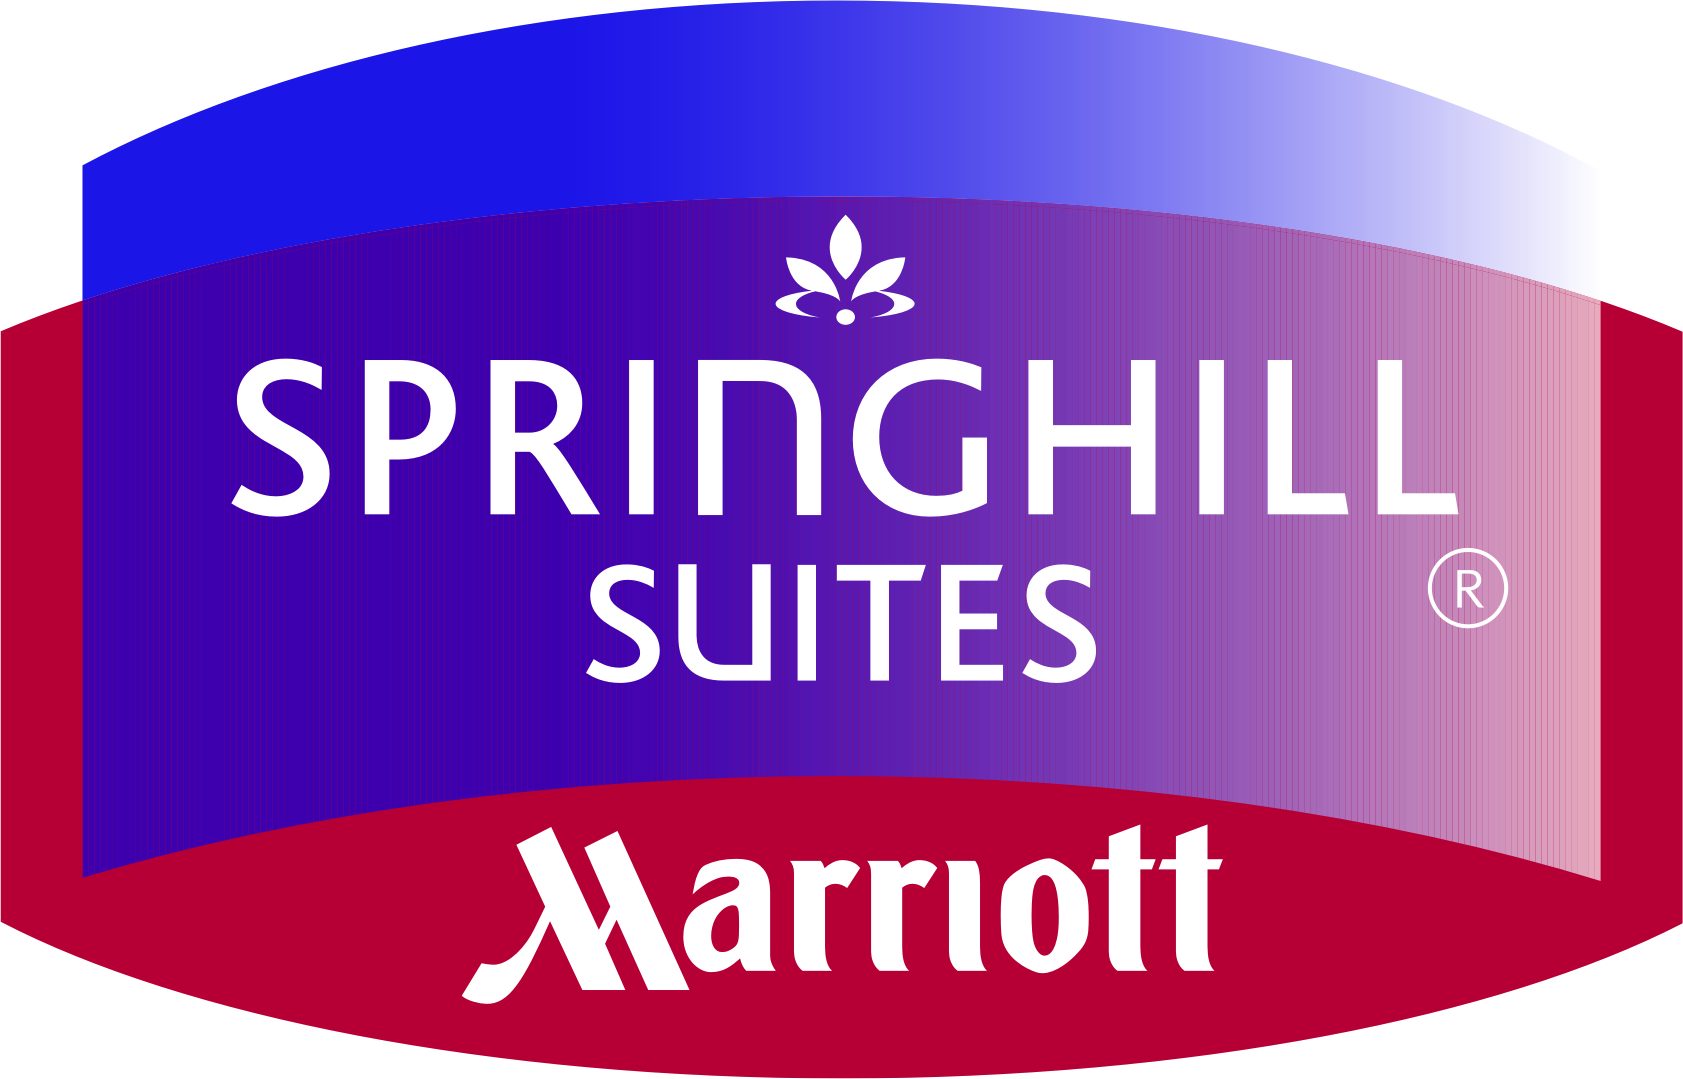 Springhill suites by marriott mrp design group for Springhill designs